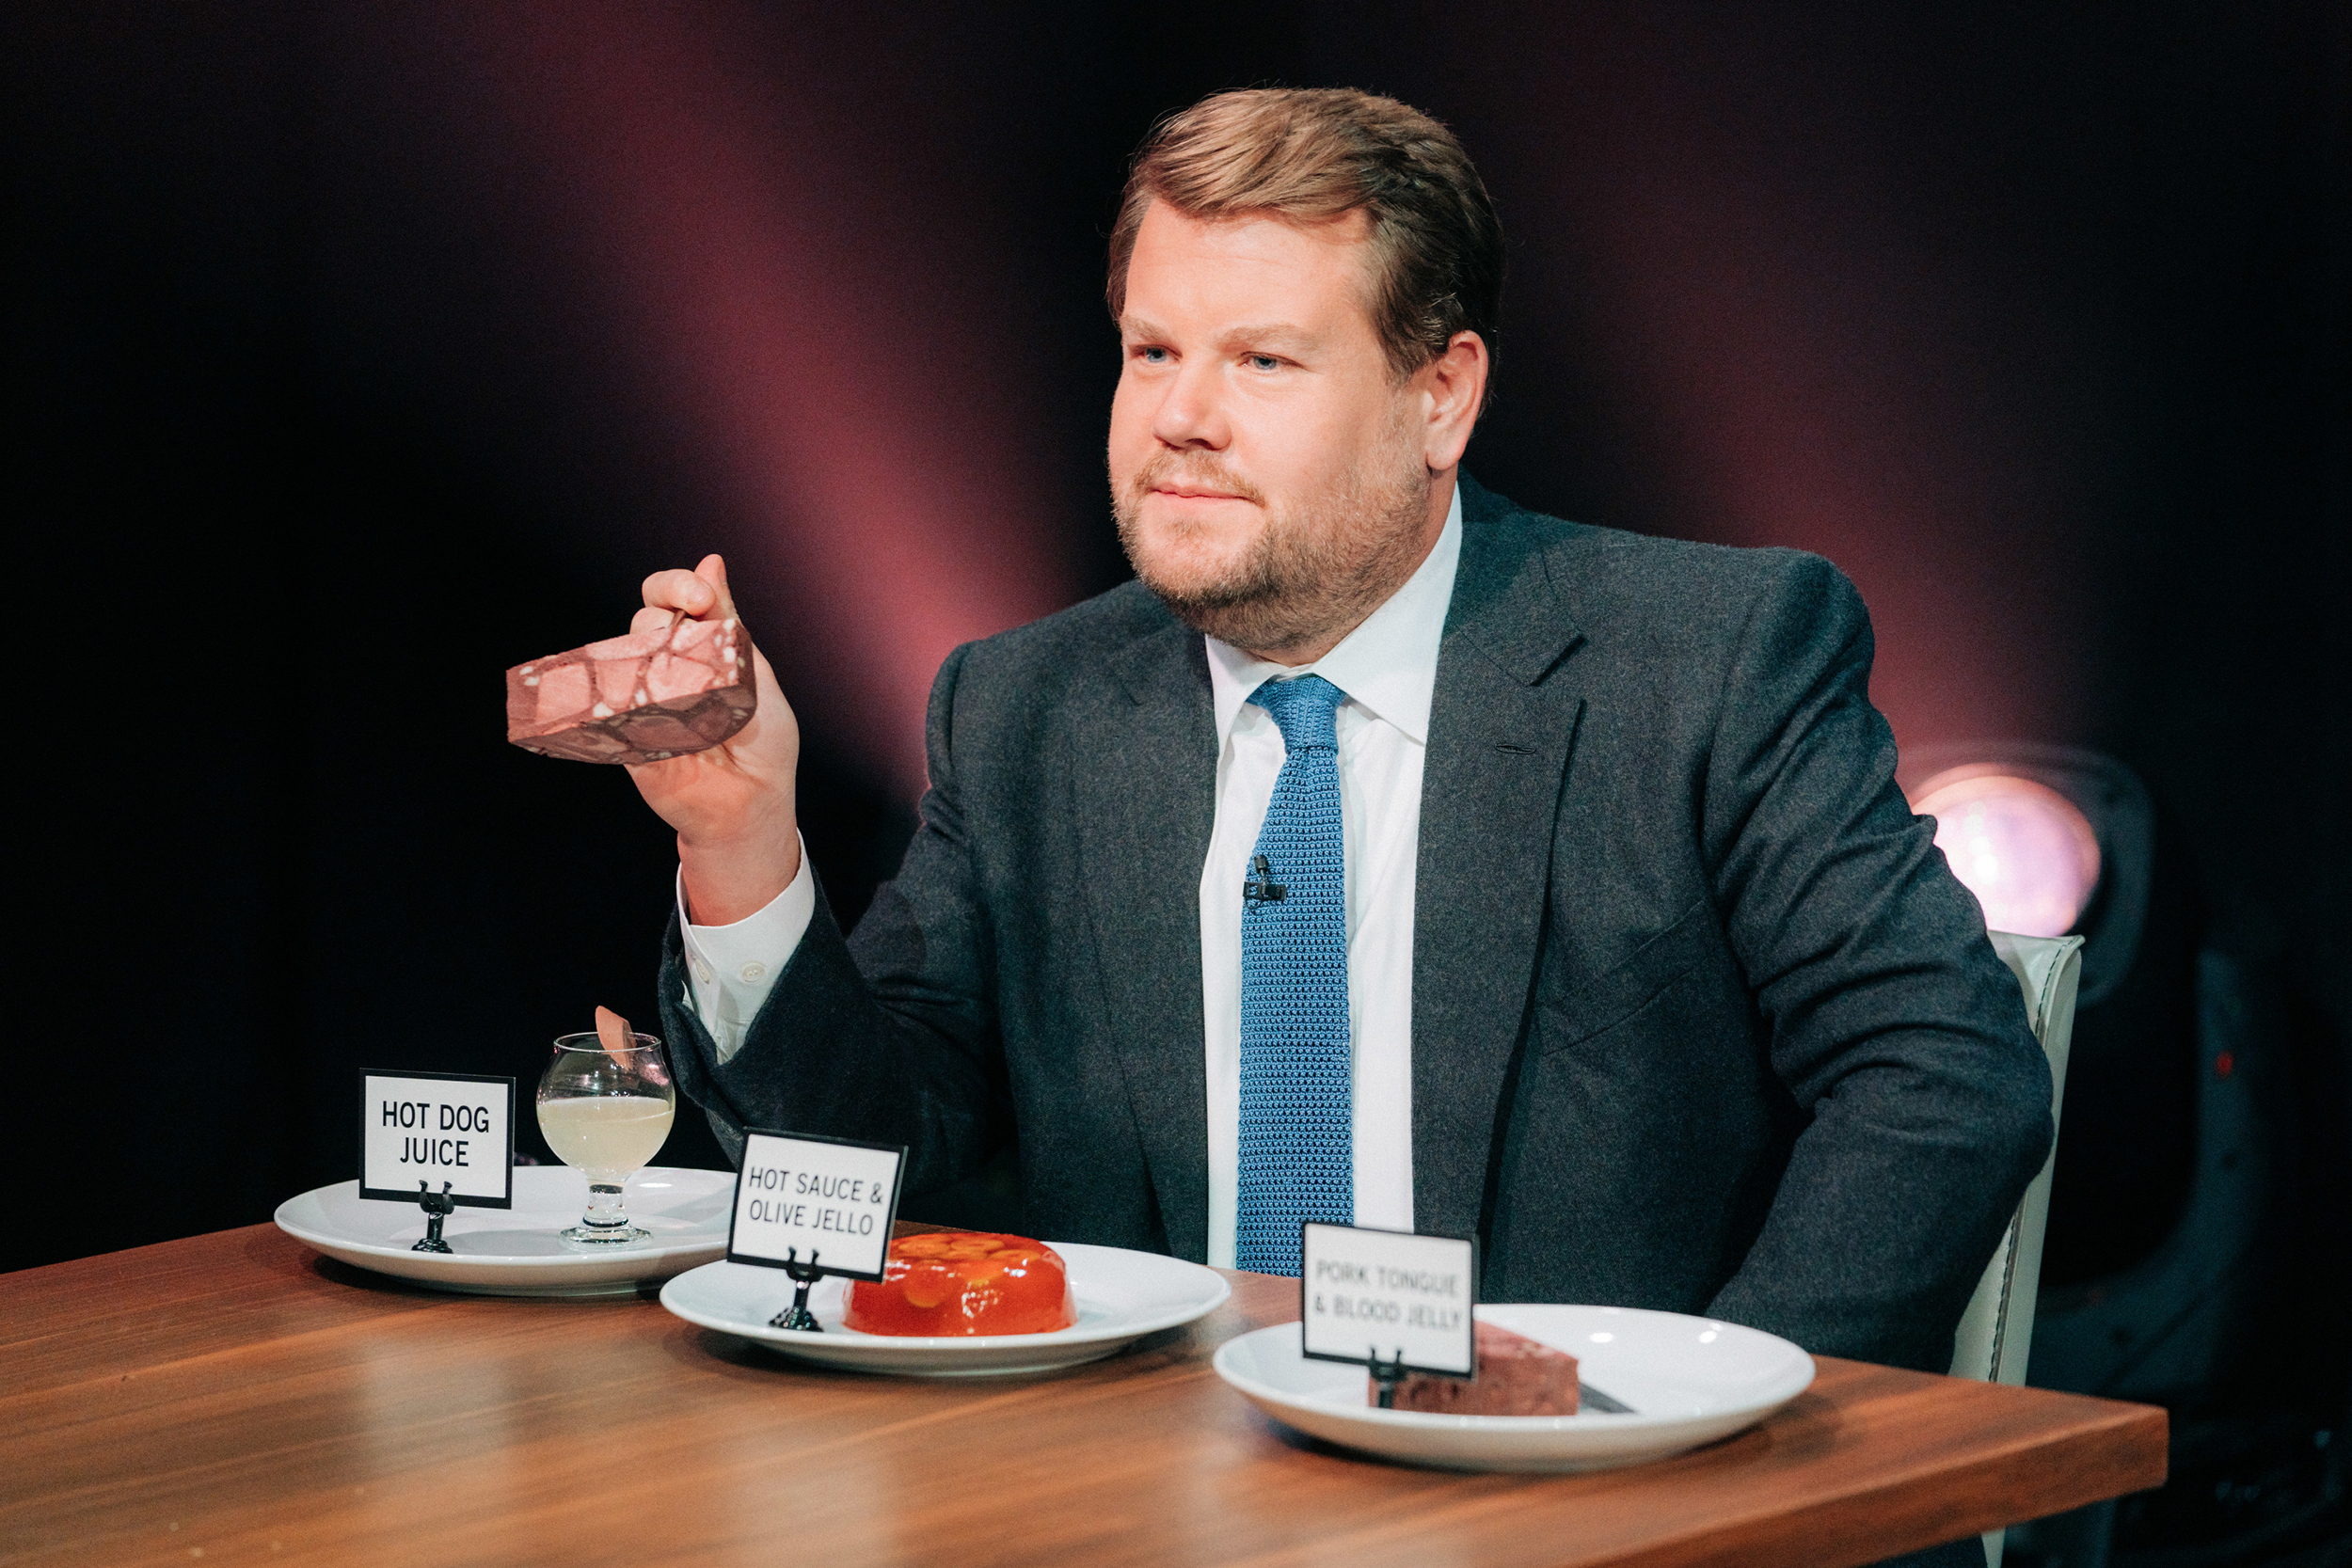 James Corden's 'Spill Your Guts' segment is facing criticism for being culturally insensitive